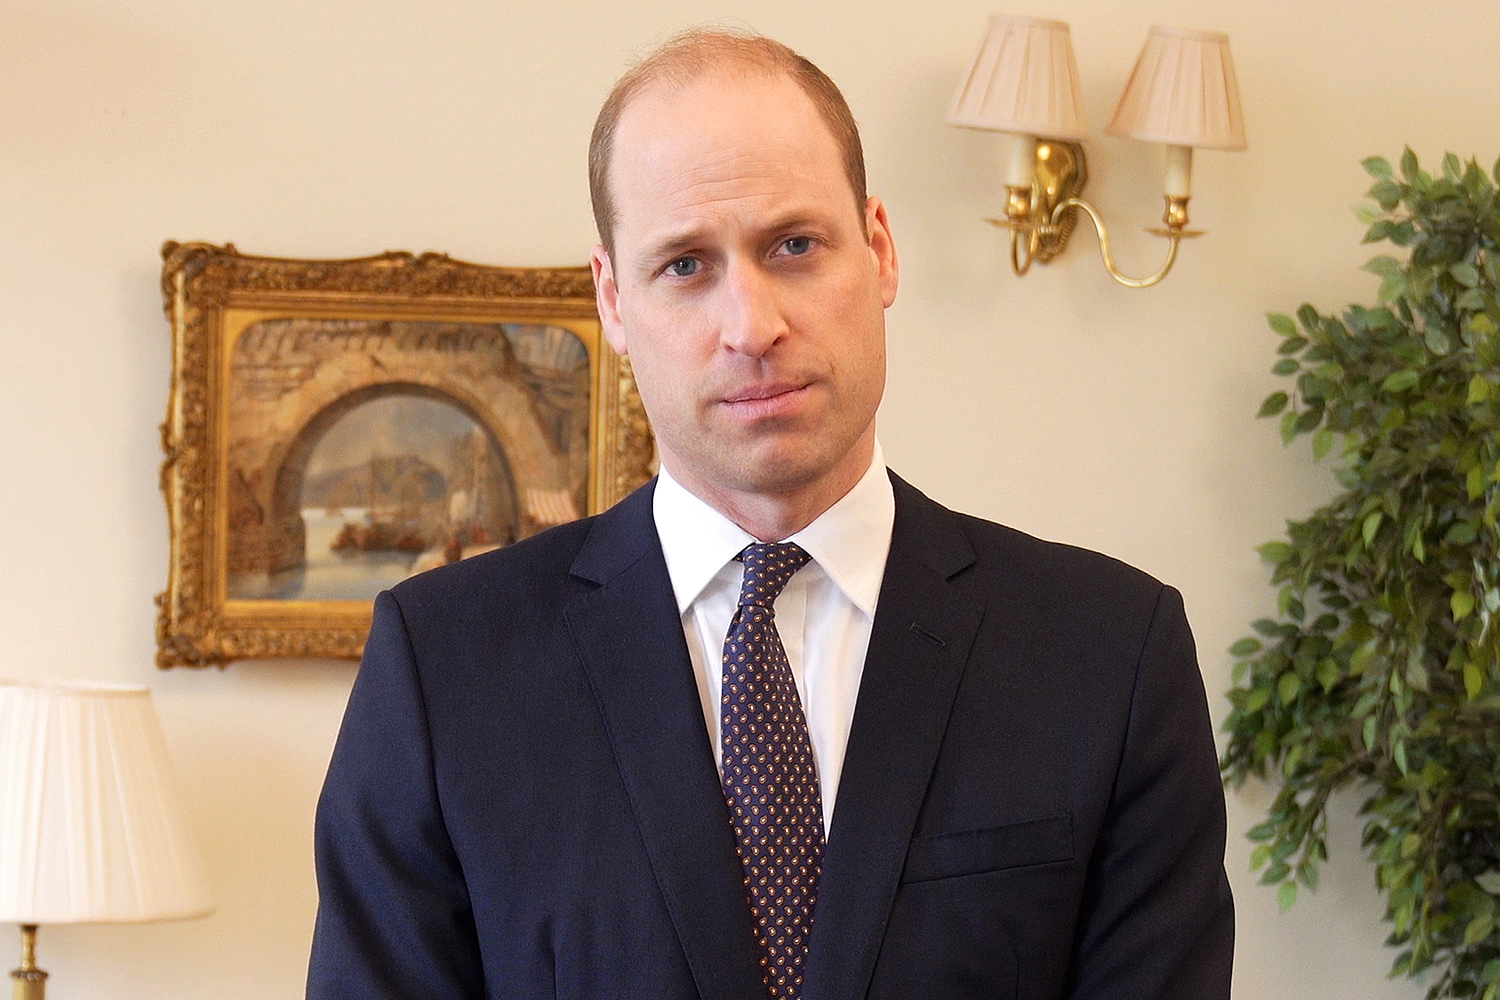 Prince William Thinks of His 3 Children as He Encourages Action Against Climate Change